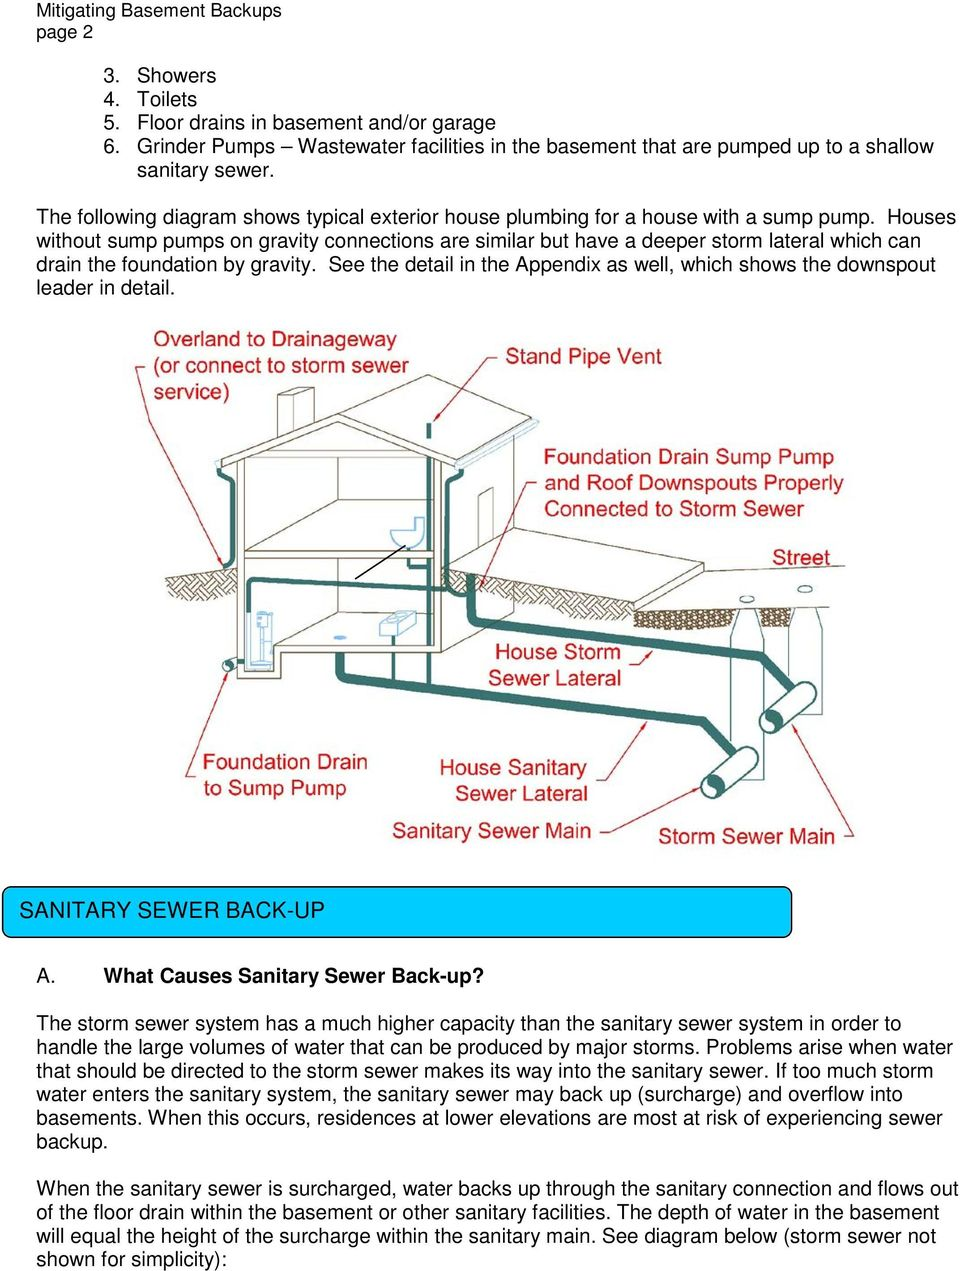 Houses without sump pumps on gravity connections are similar but have a deeper storm lateral which can drain the foundation by gravity.